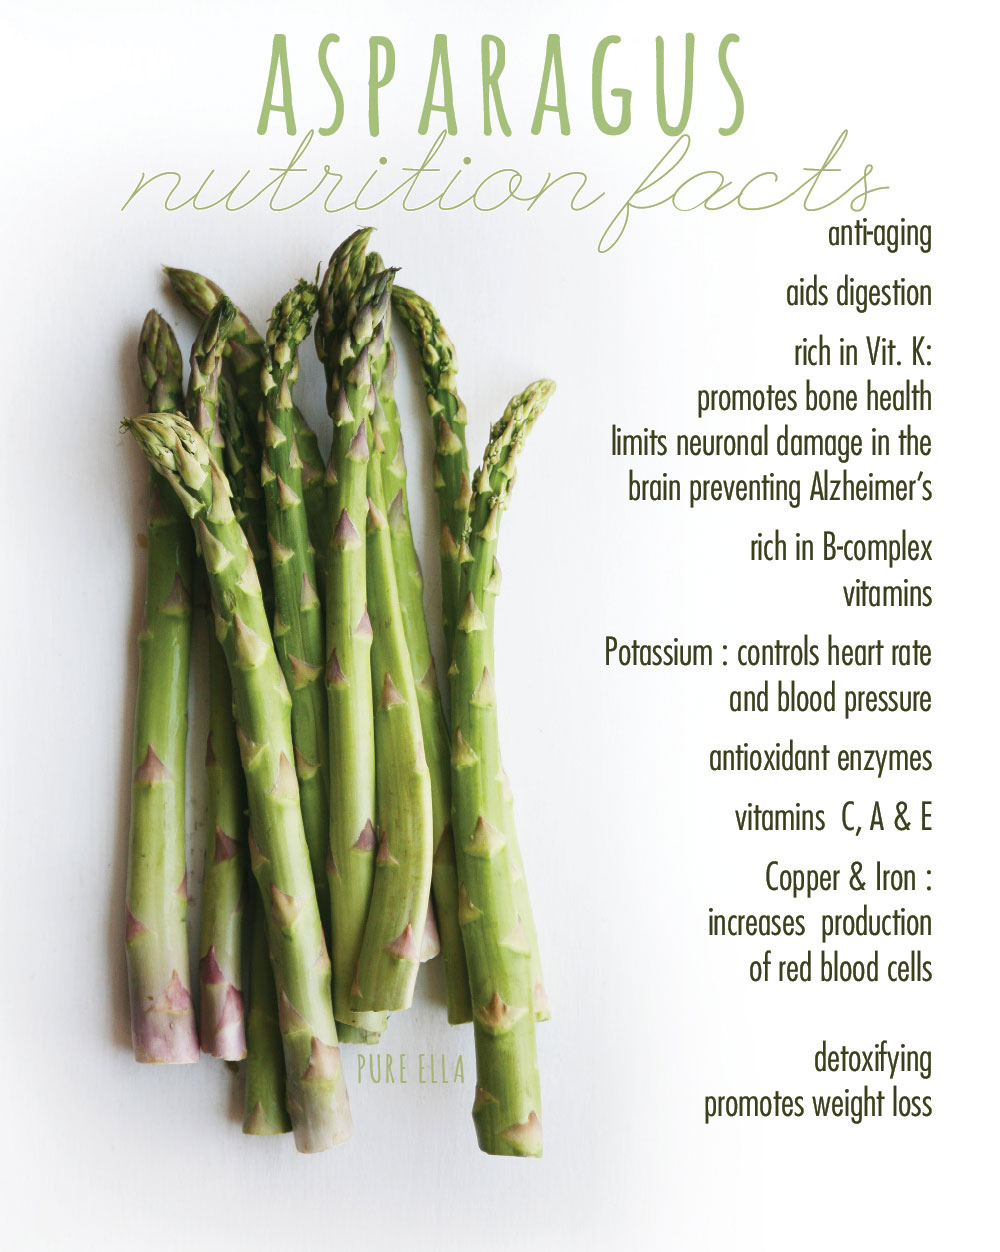 Asparagus-Nutrition-Facts-sm.jpg